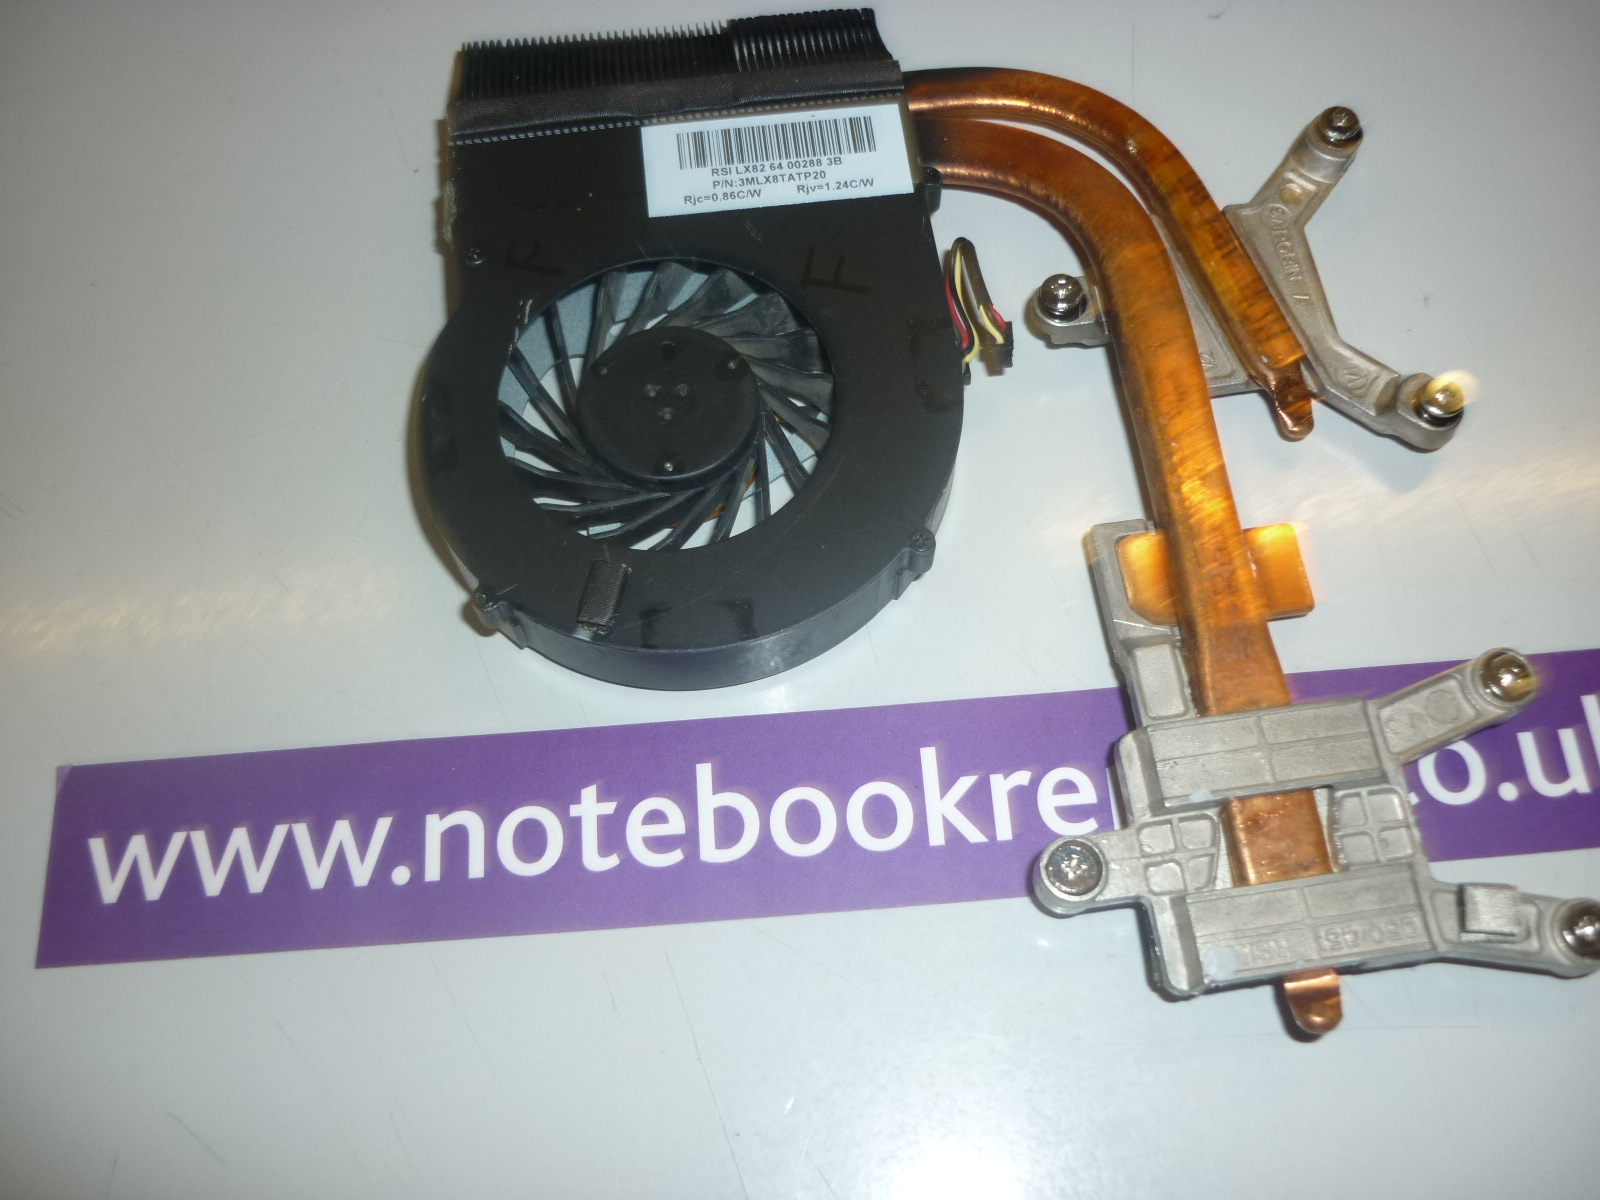 DV6-6035 heatsink and fan